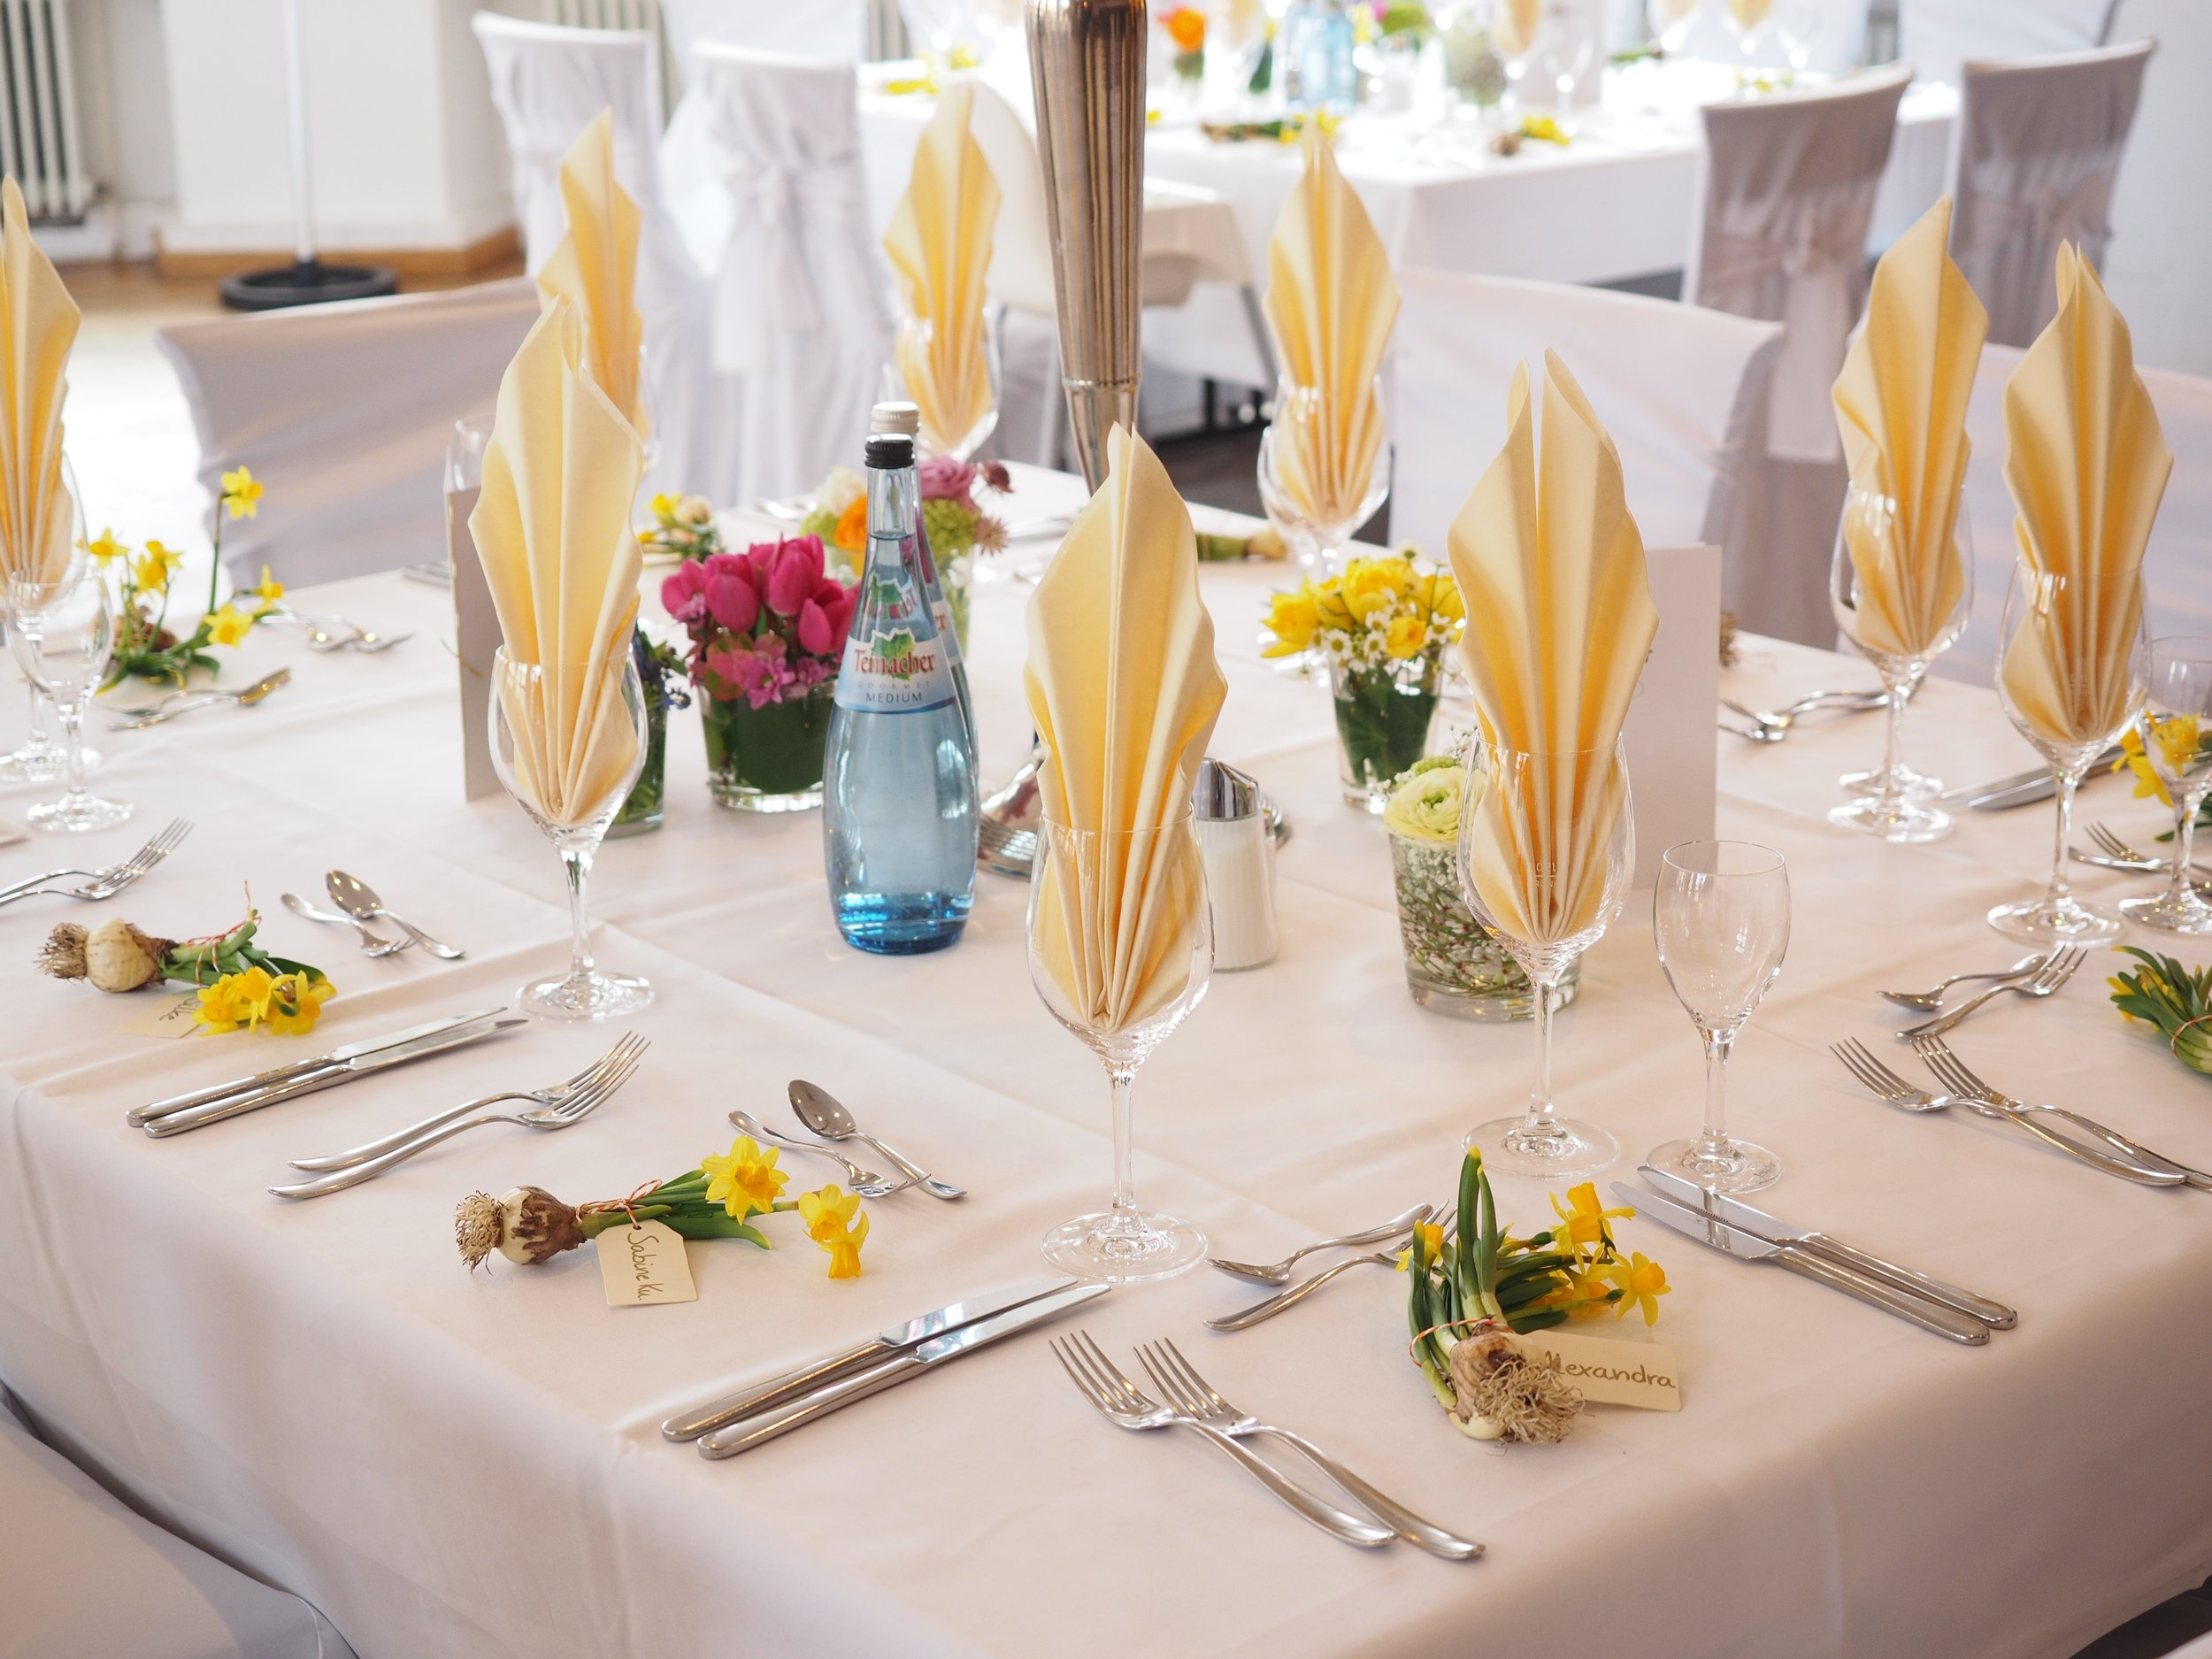 Catering to your function   We can custom-make tablecloths and napkins to your specific measurements in any of the above fabrics.